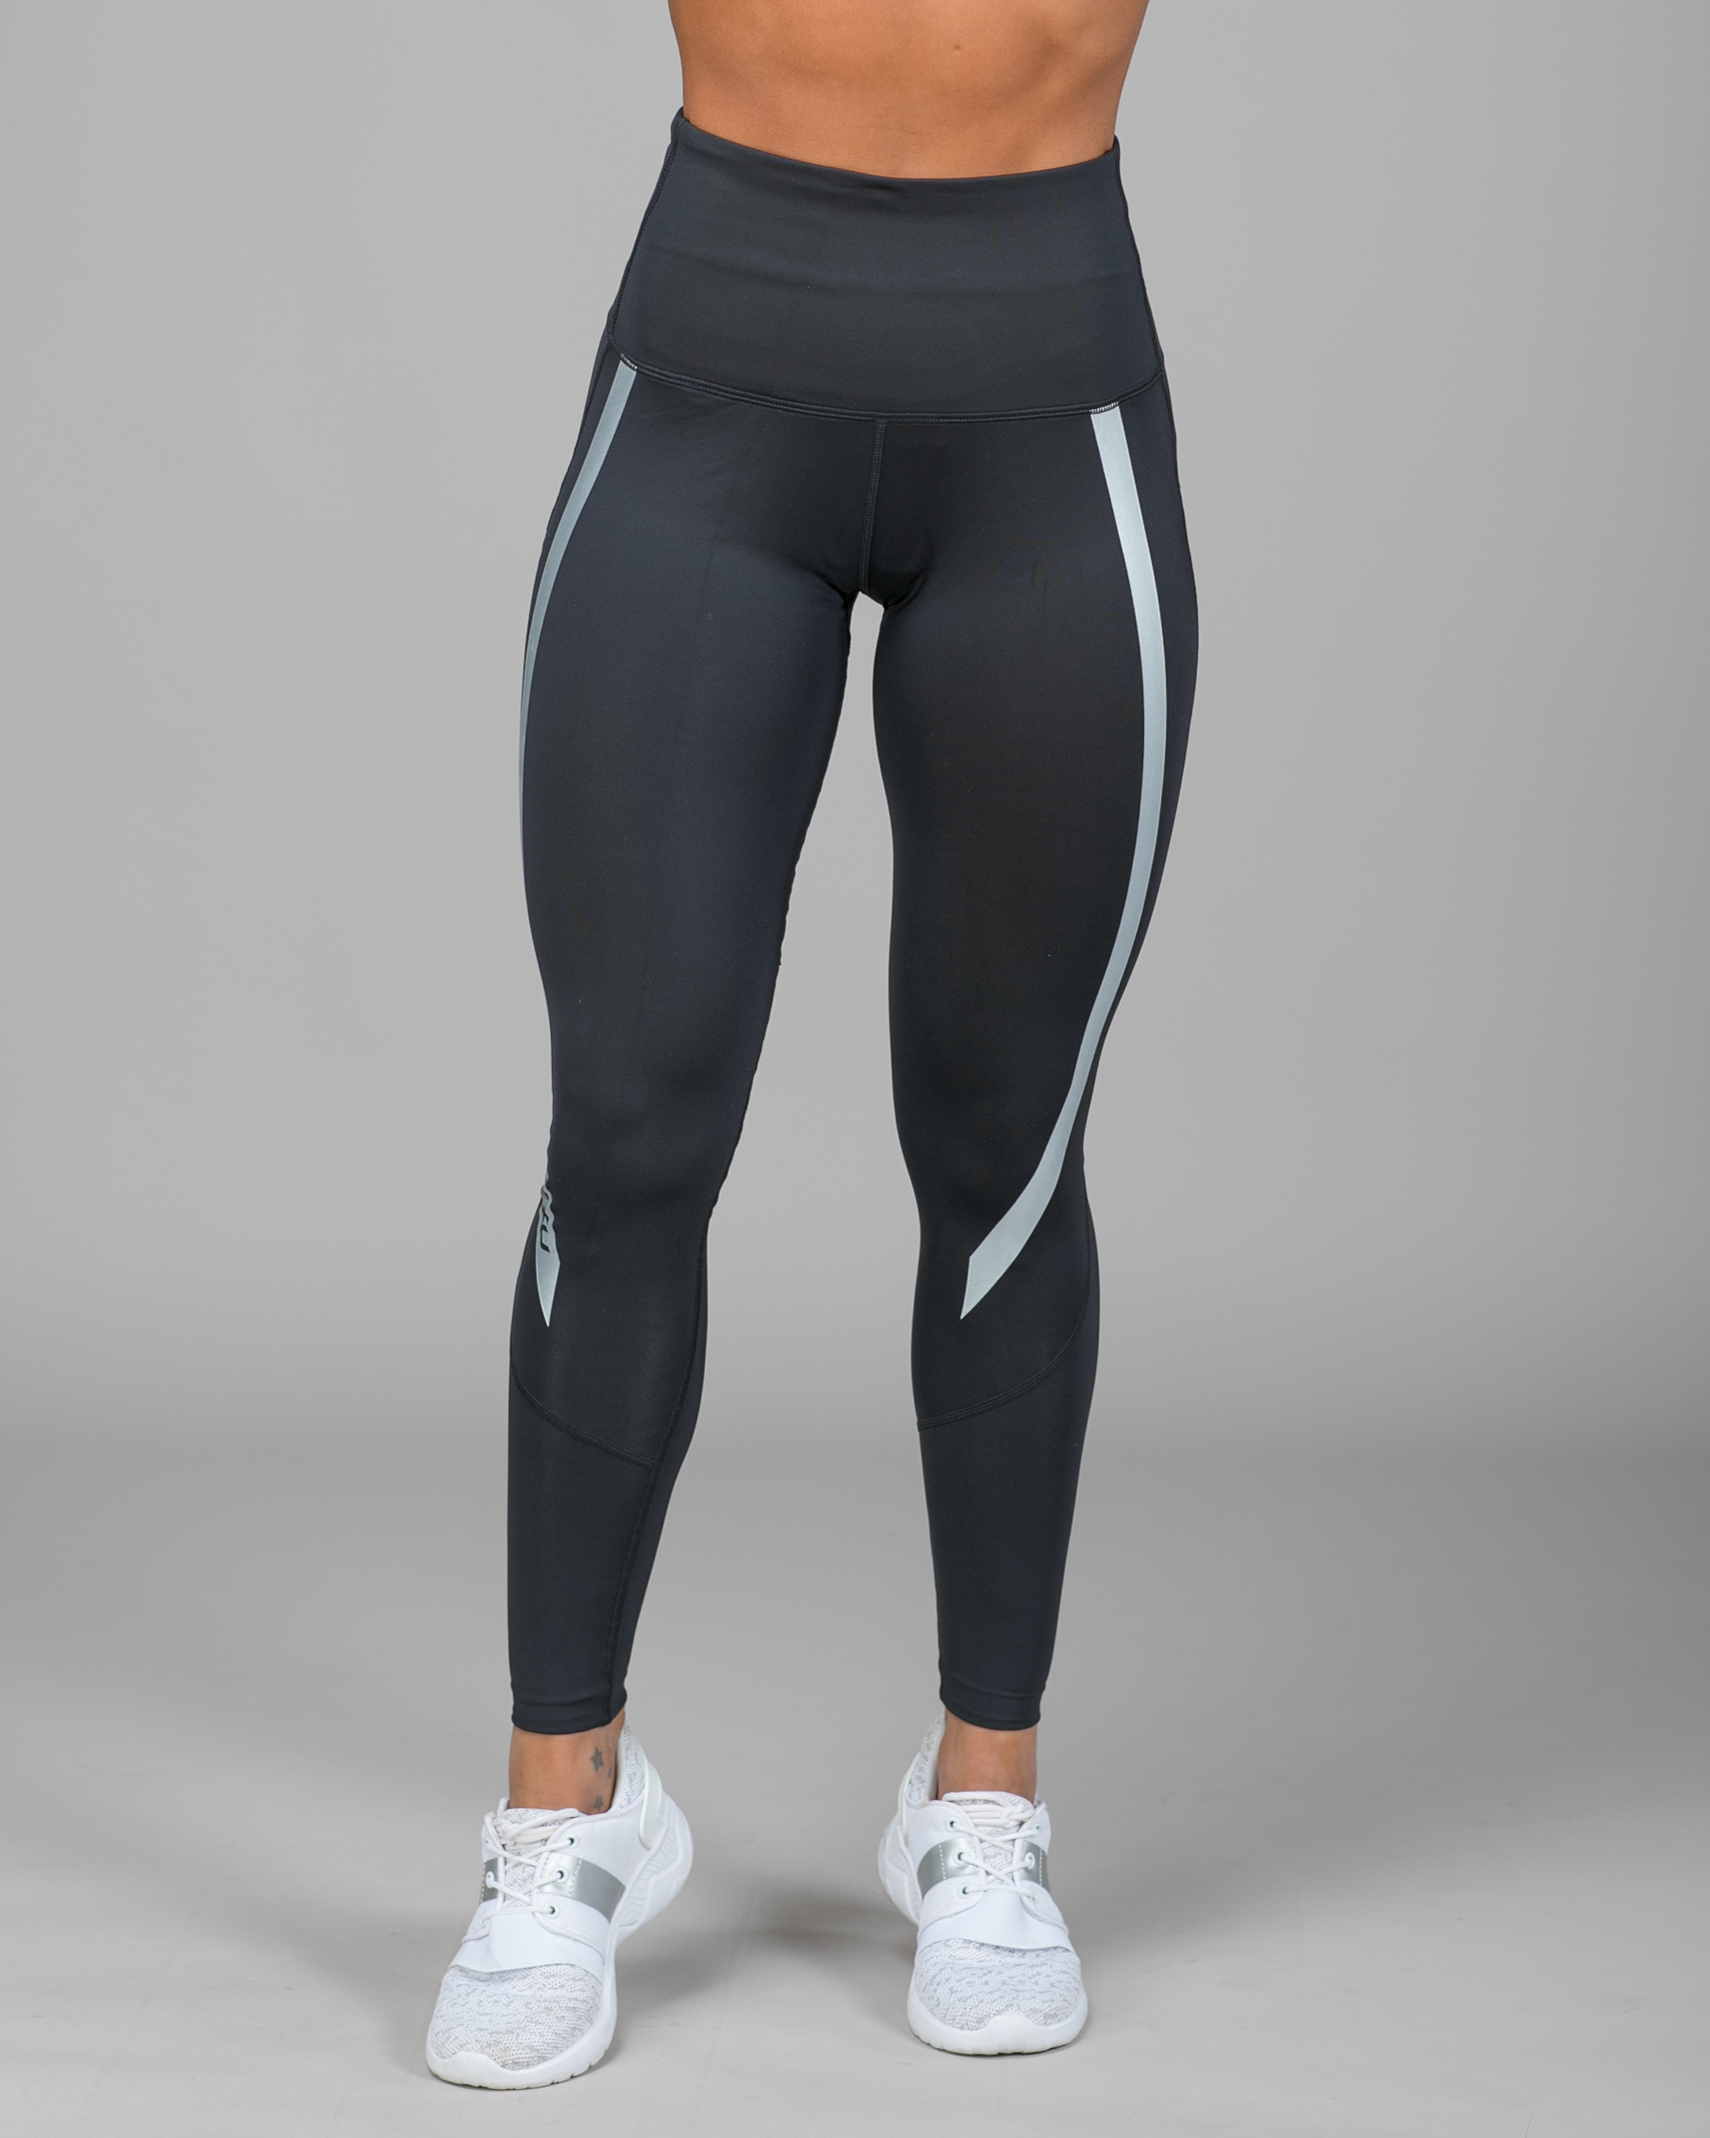 37581086 2XU Hi Rise Compression Tights - Black/Silver - Tights.no